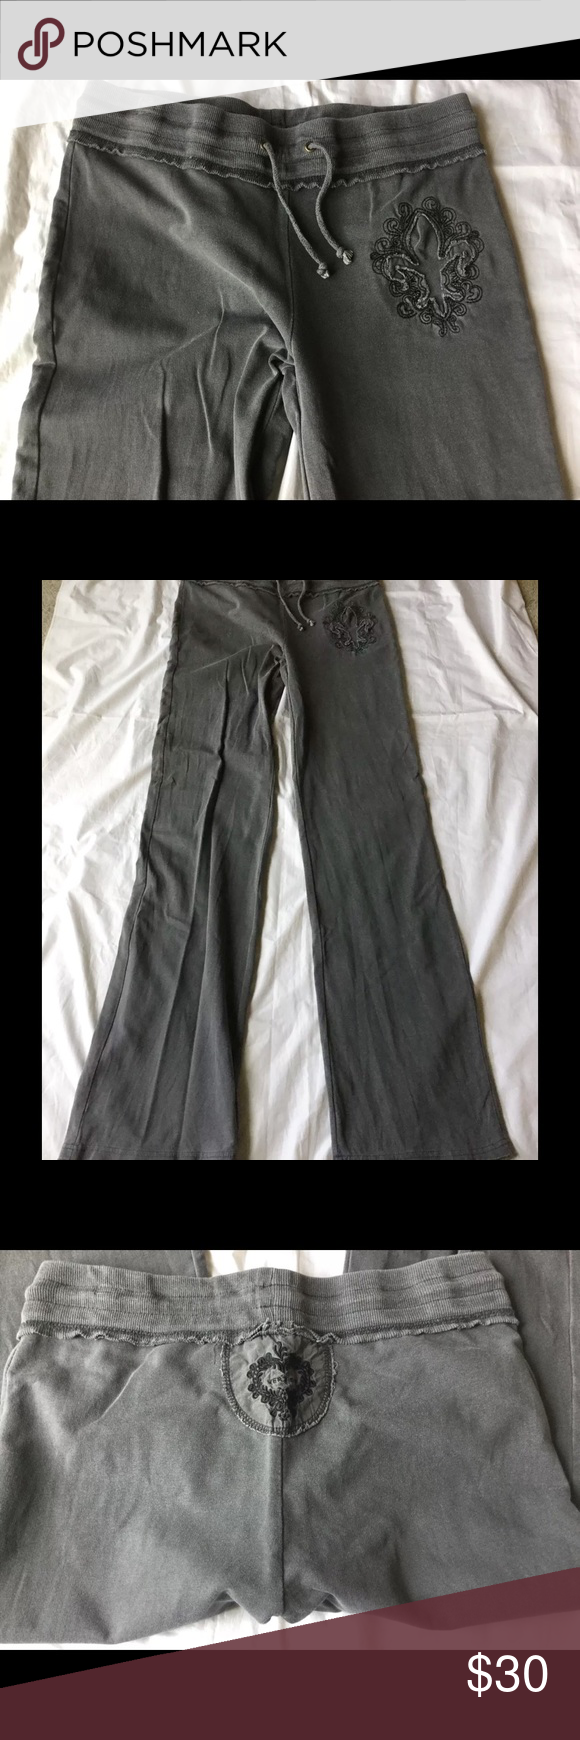 Vertigo Embellished Sweatpants Dark Gray Excellent condition normal pulling from washing. Vertigo Paris Pants Track Pants & Joggers